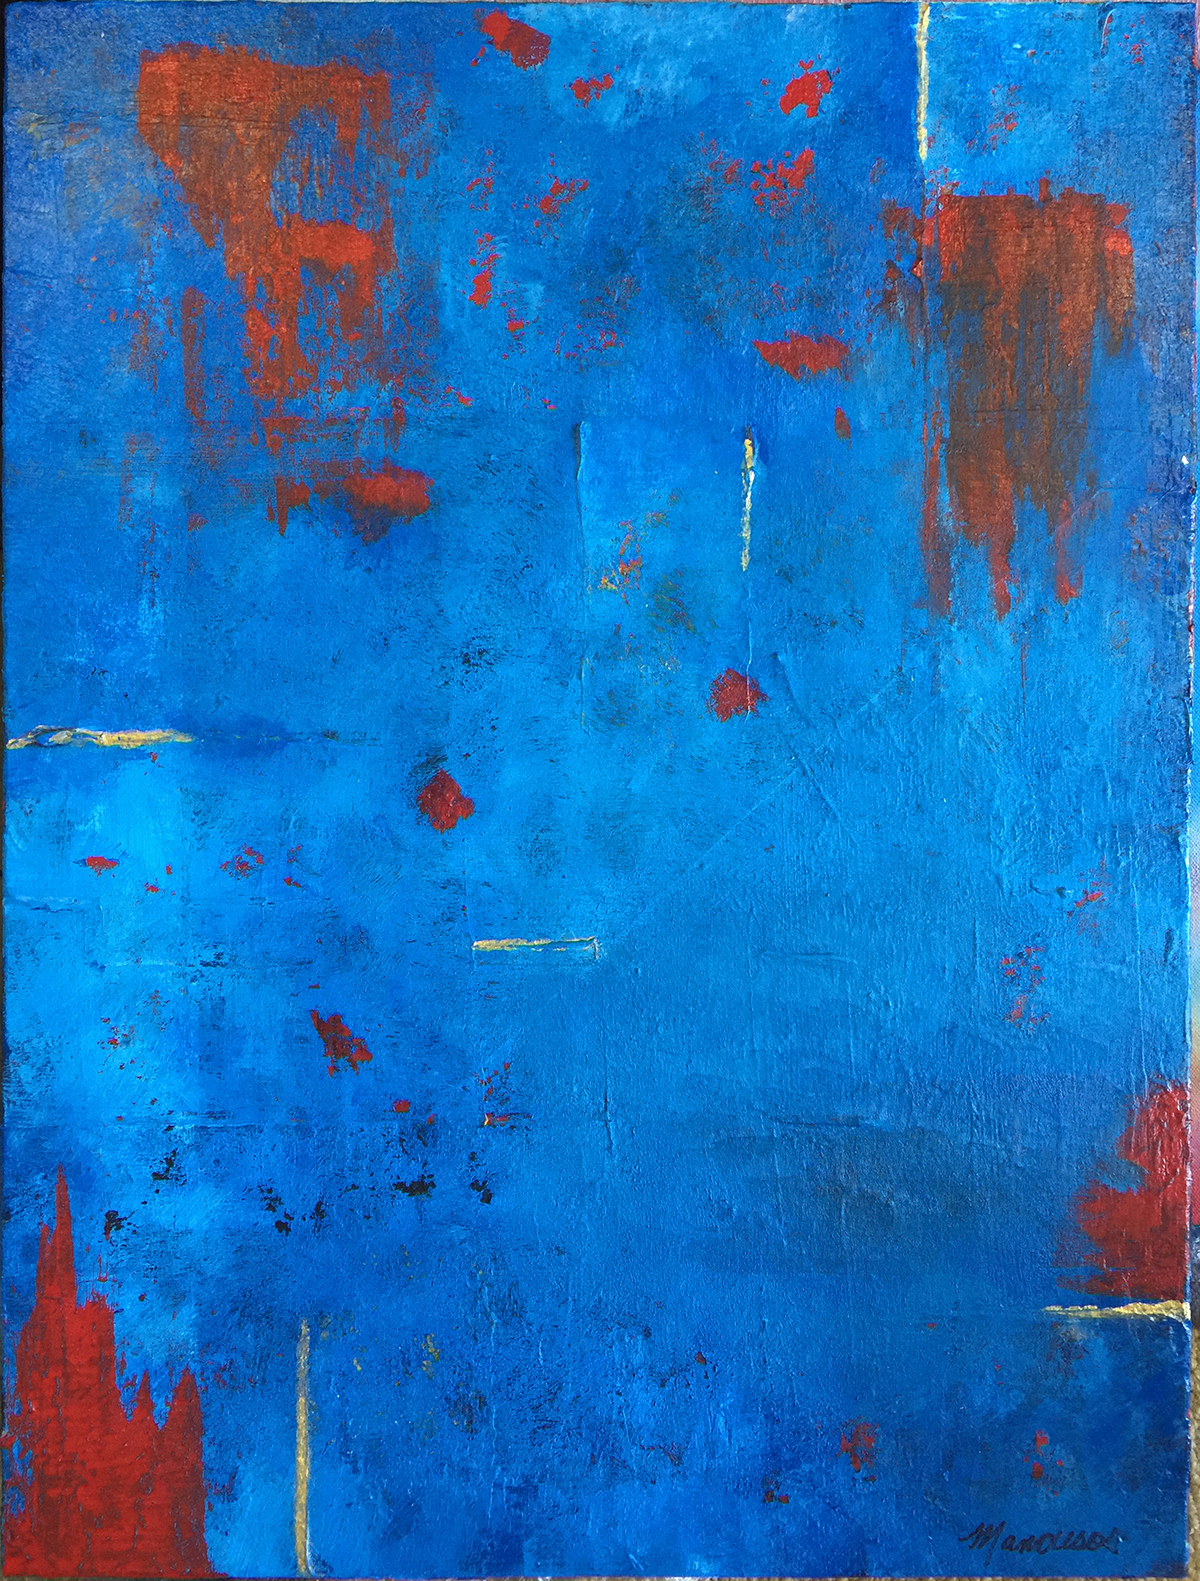 The Blues and Reds Manousos Original small